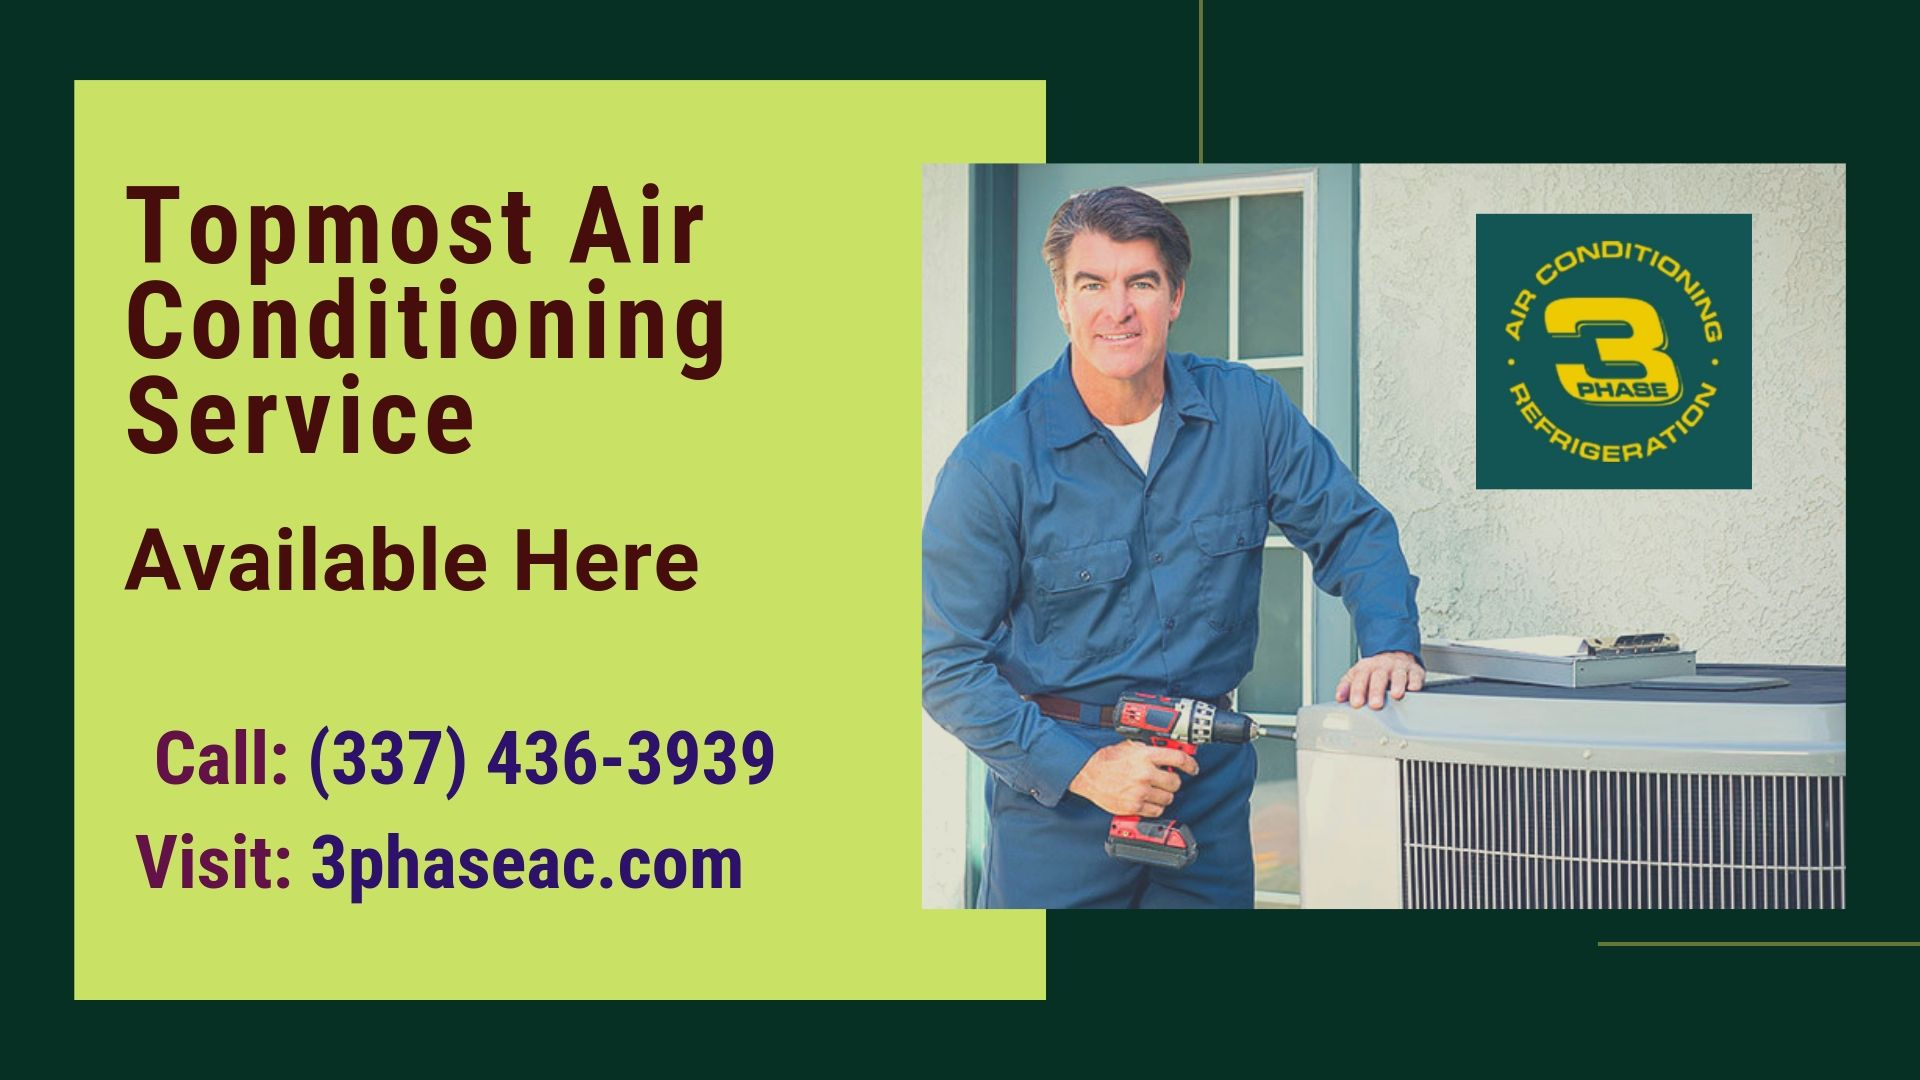 Lake Charles Air Conditioner Repair Air Conditioning Services